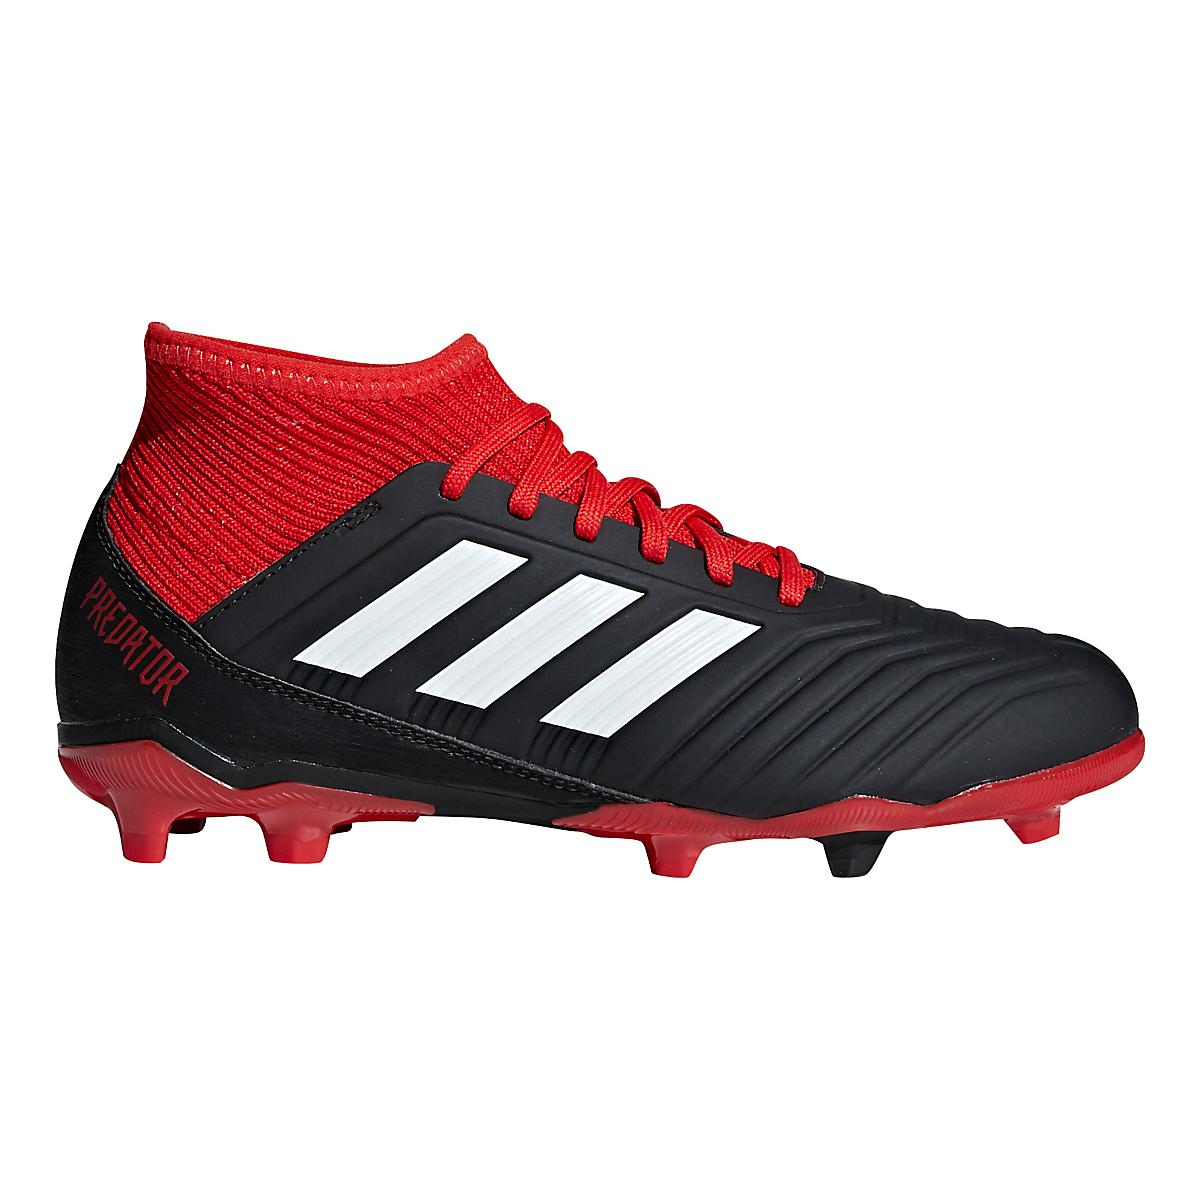 e762fc71057 Kids adidas Predator 19.3 Firm Ground Boots Cleated Shoe